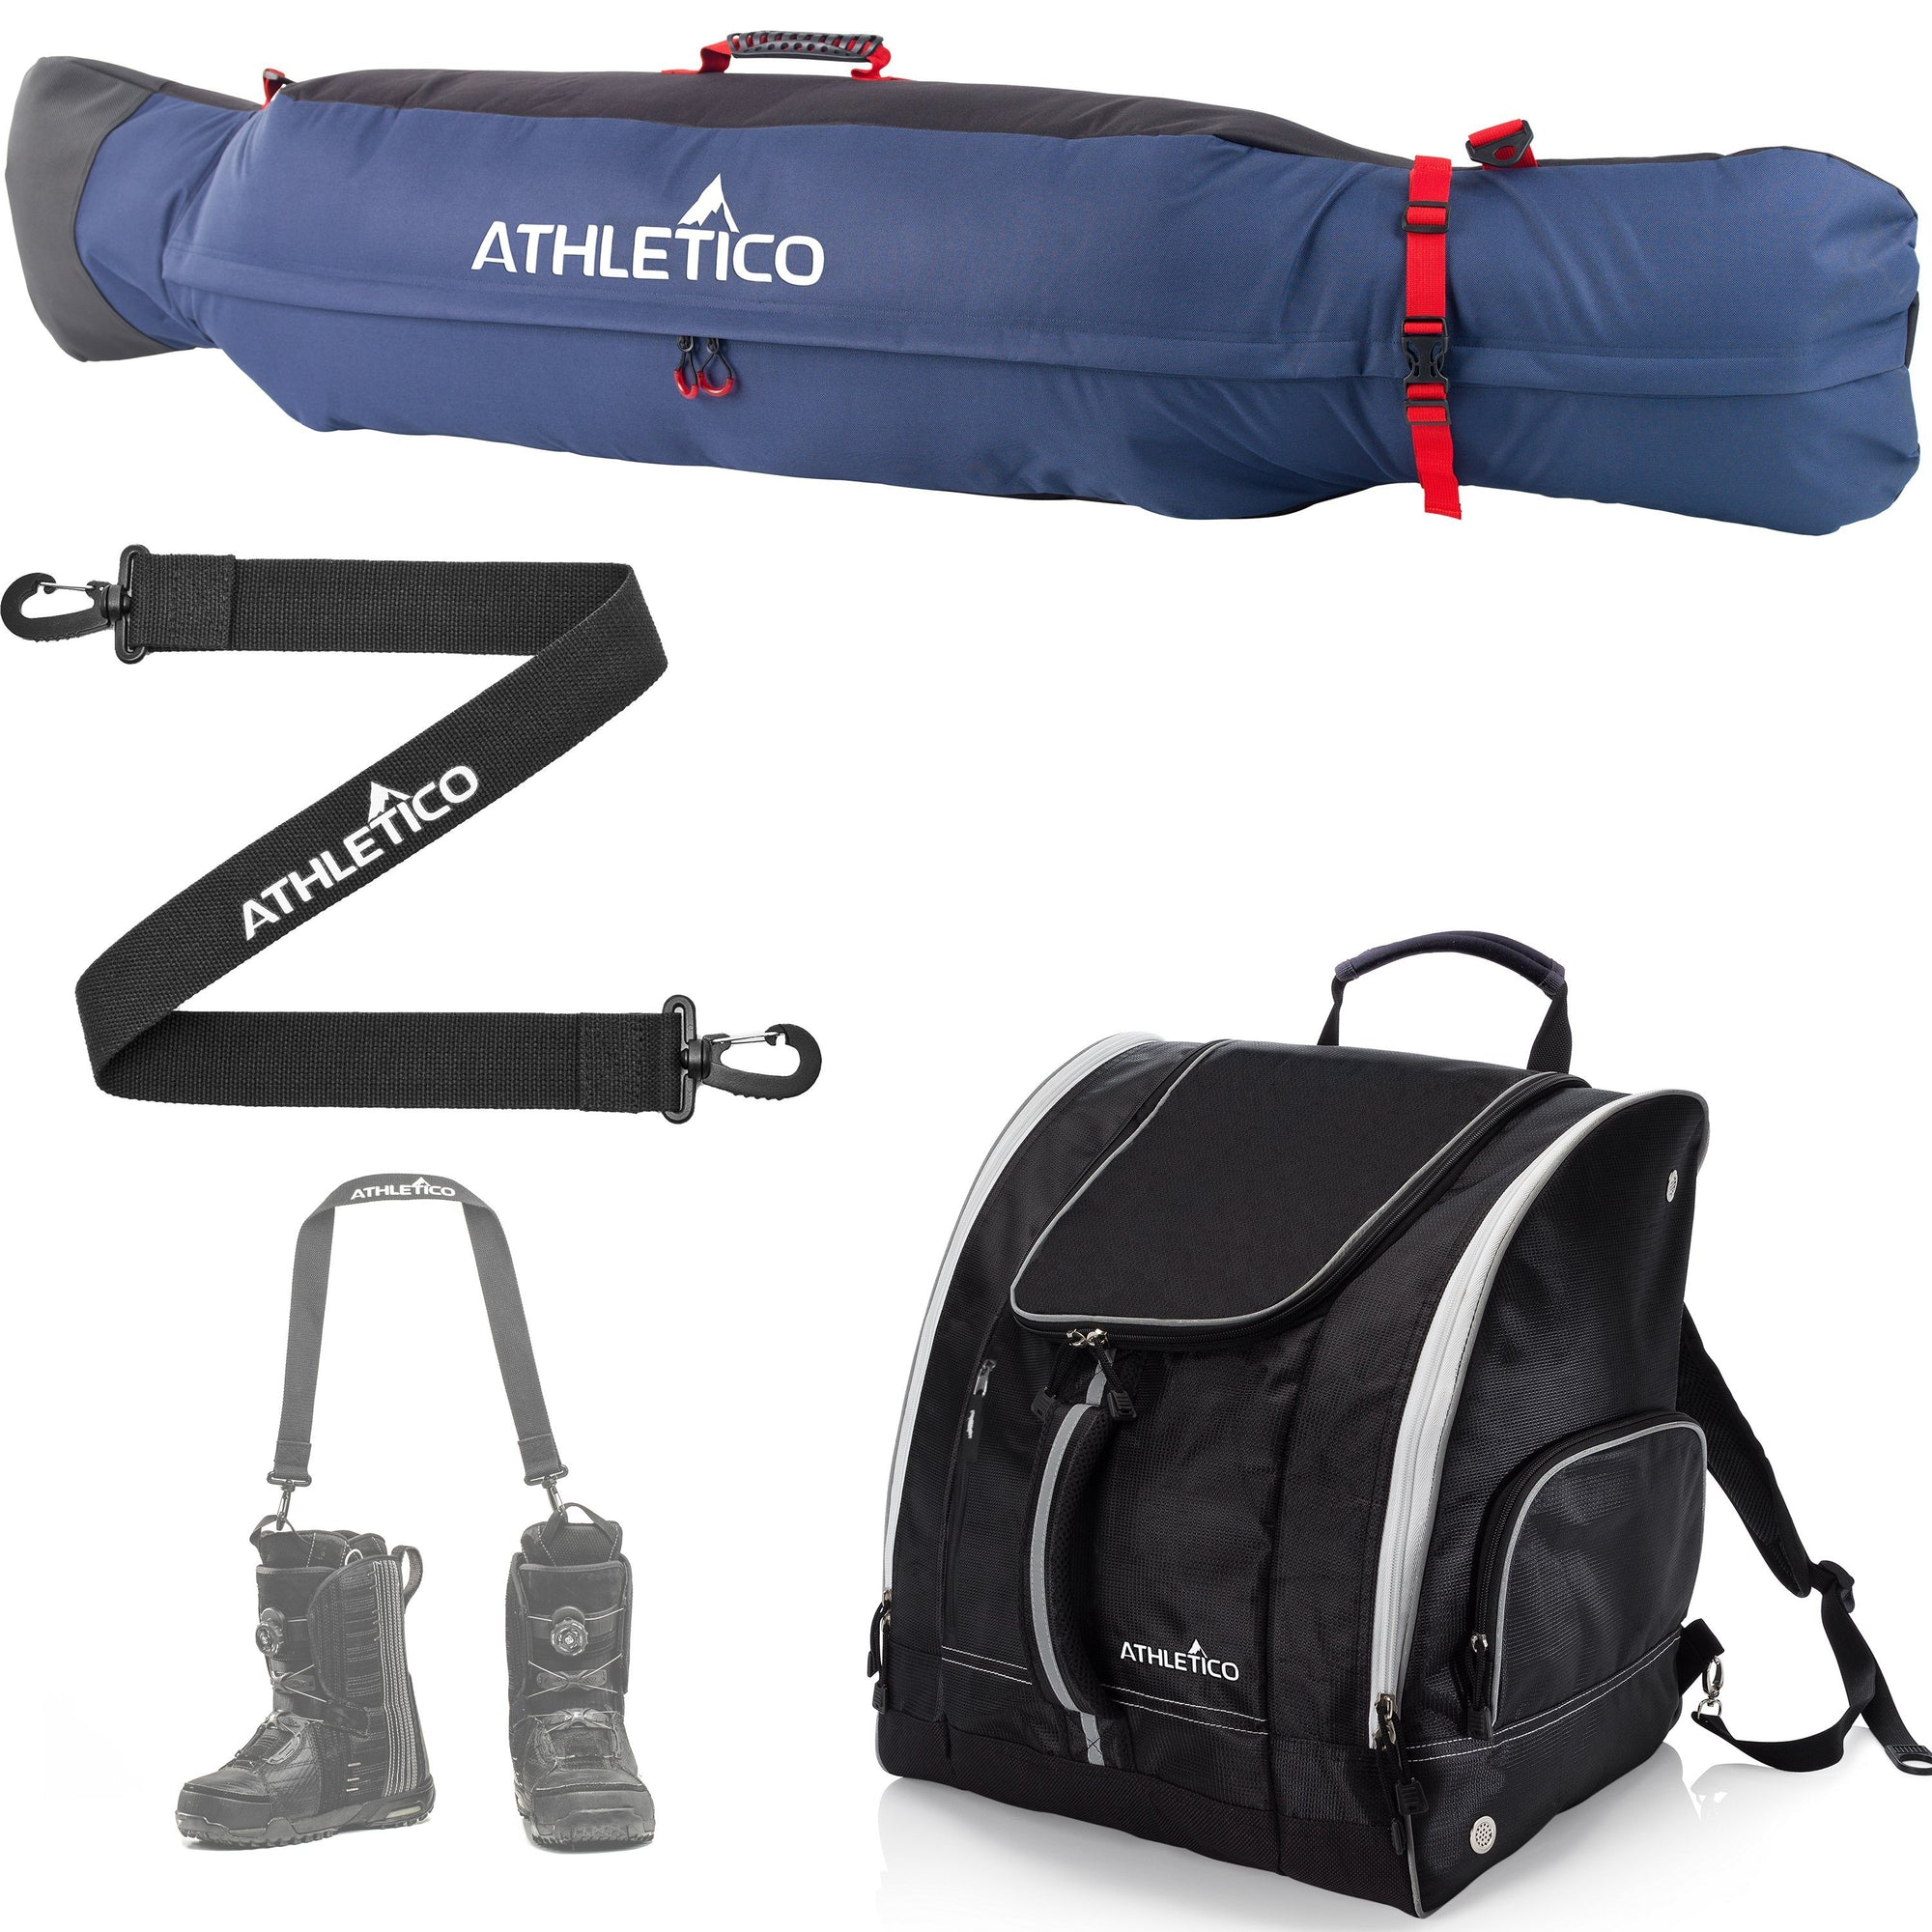 Athletico Freestyle Padded Snowboard Bag Bundle - Athletico